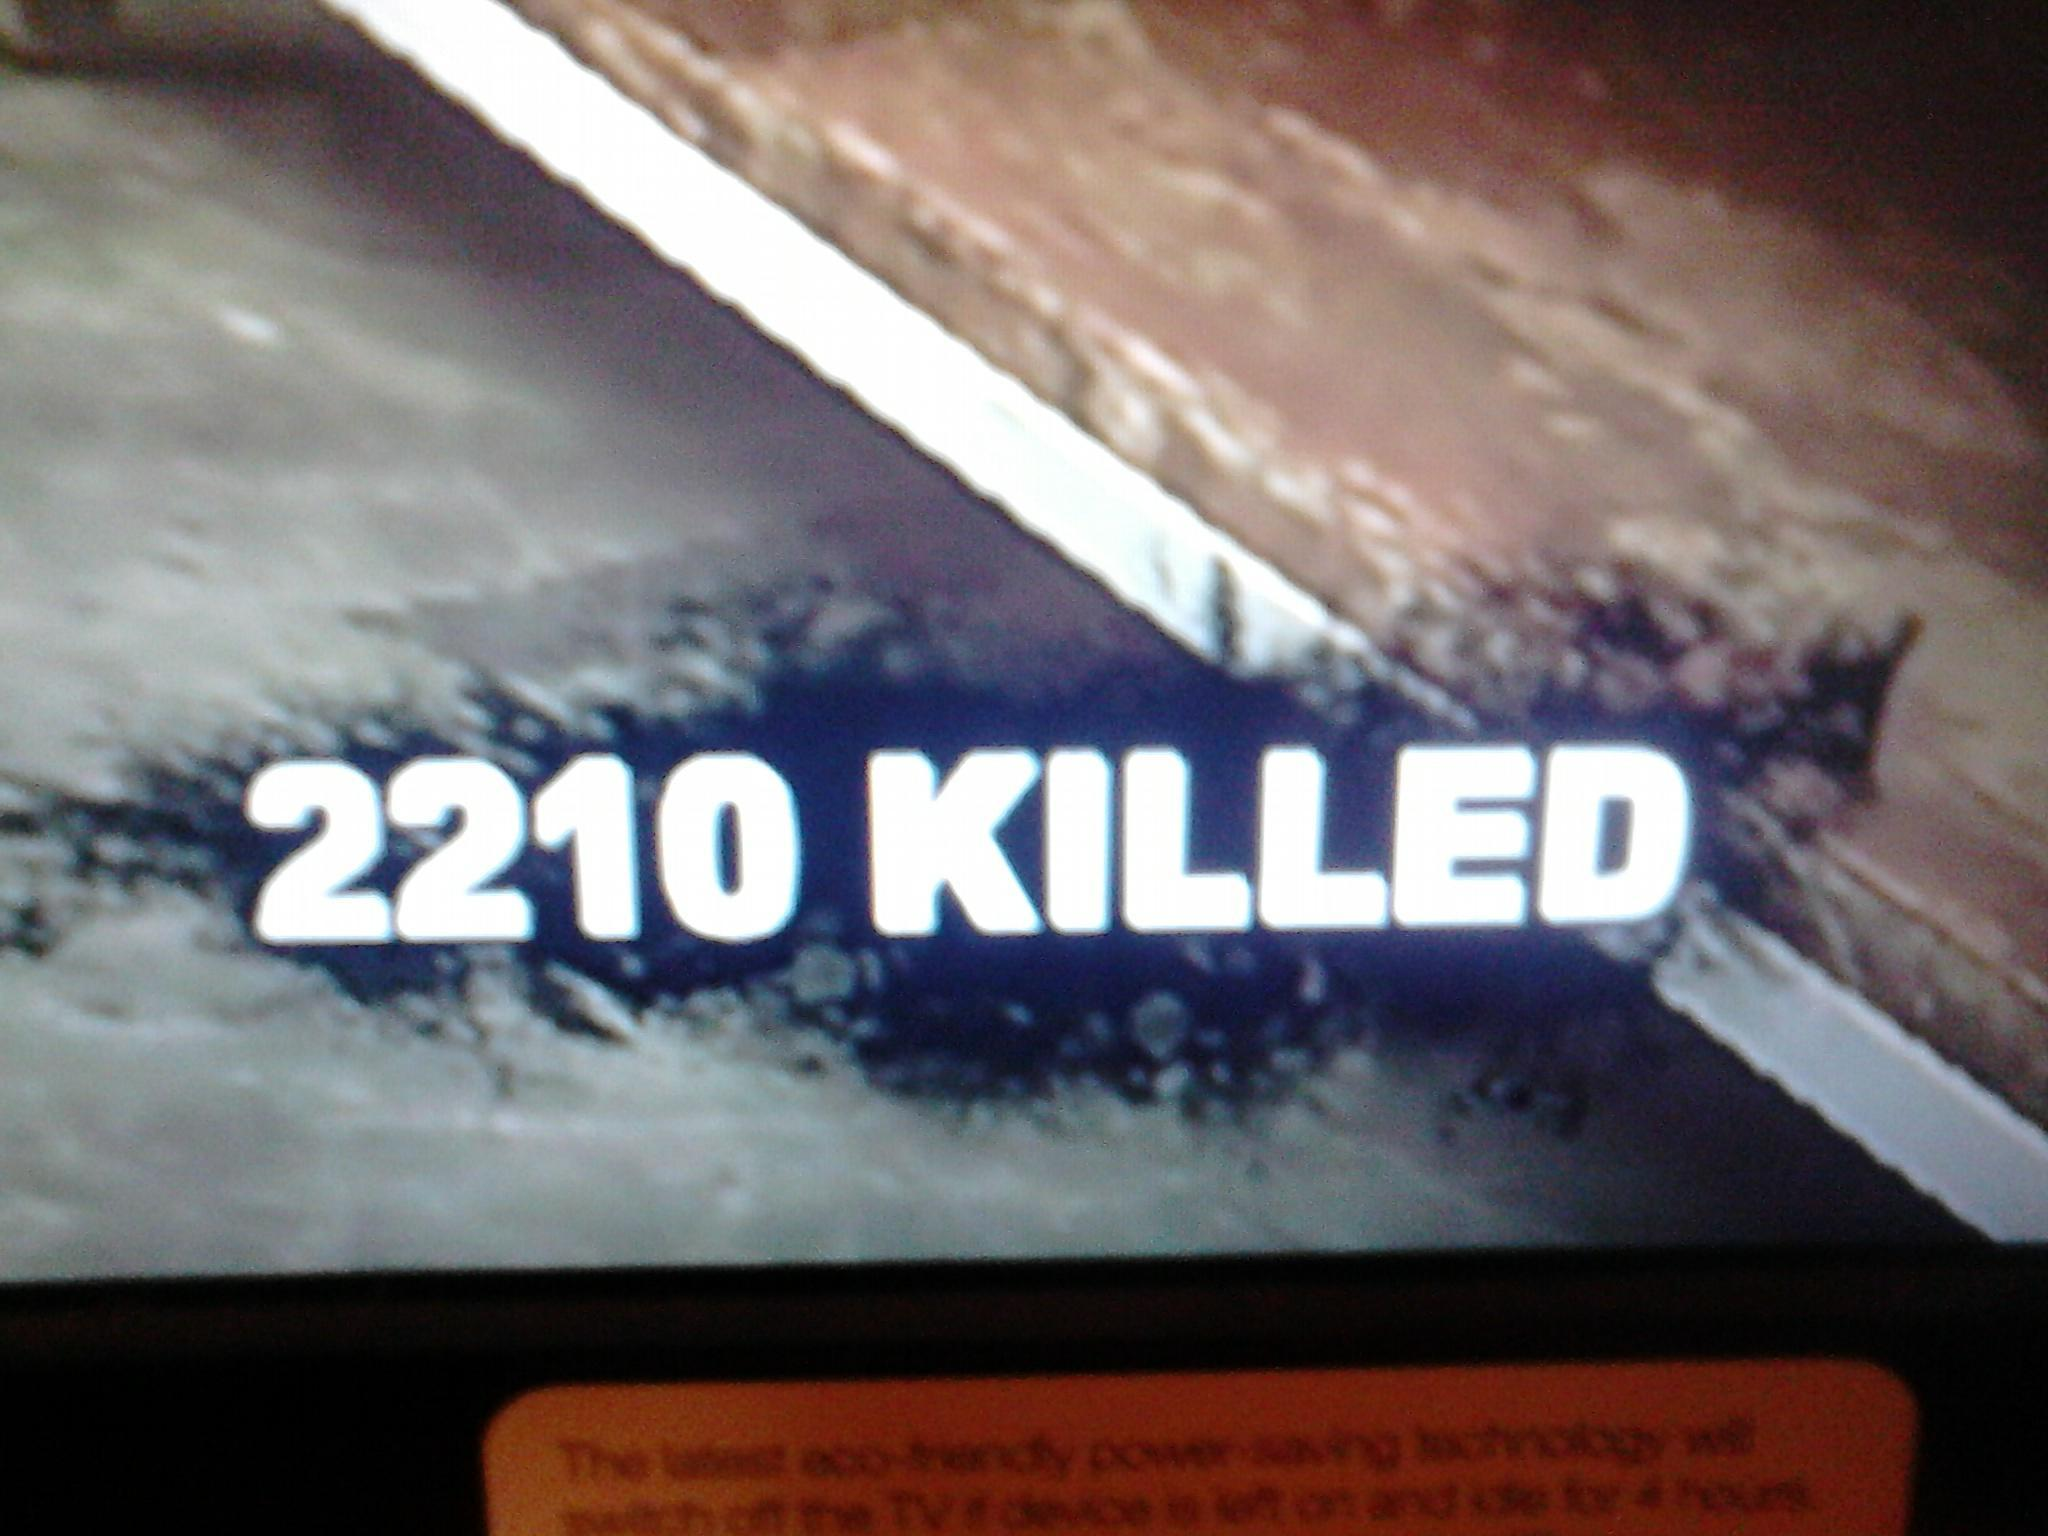 I Got 99 problems but 2210 zombies ain't none!